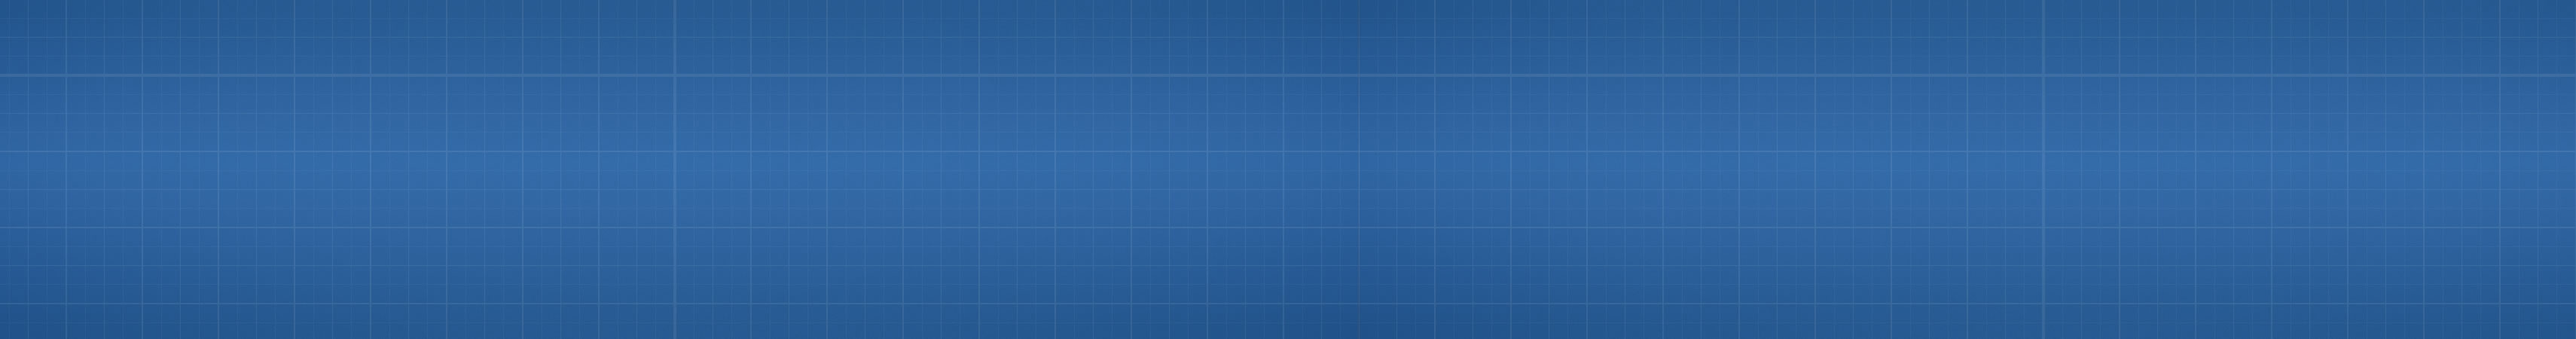 blueprint_bg